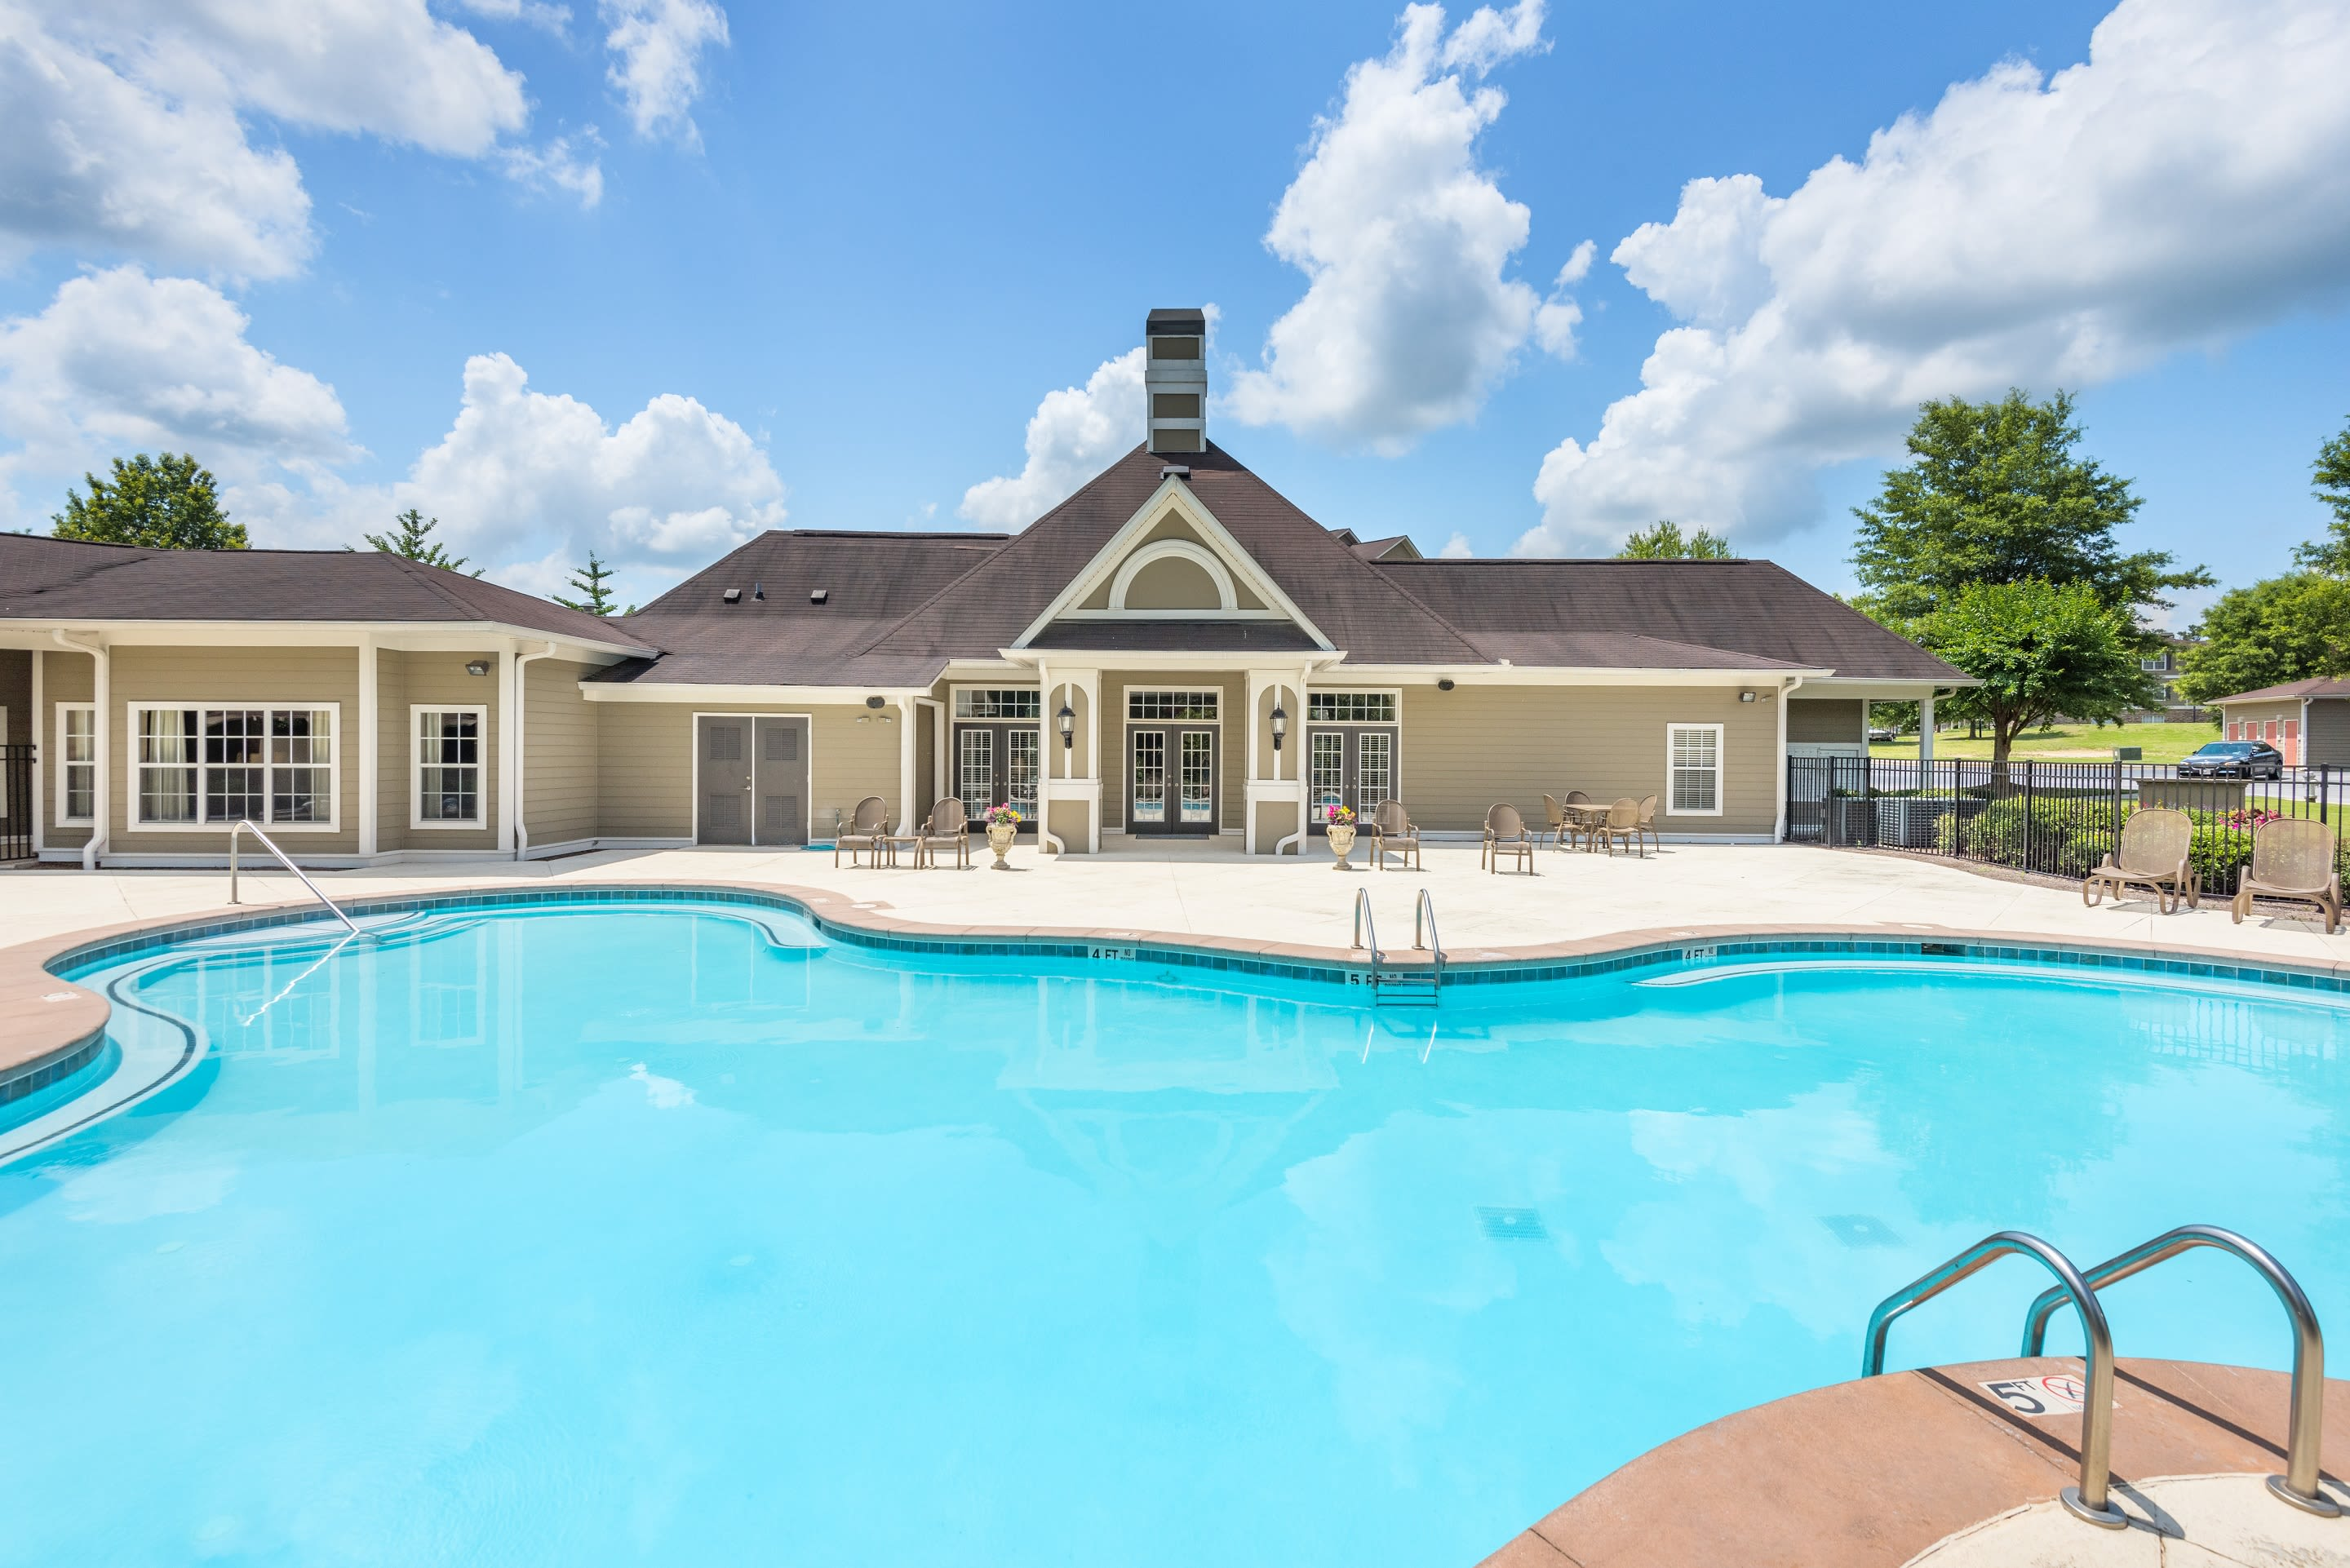 One Rocky Ridge Apartment Homes offers a luxury swimming pool in Douglasville, Georgia